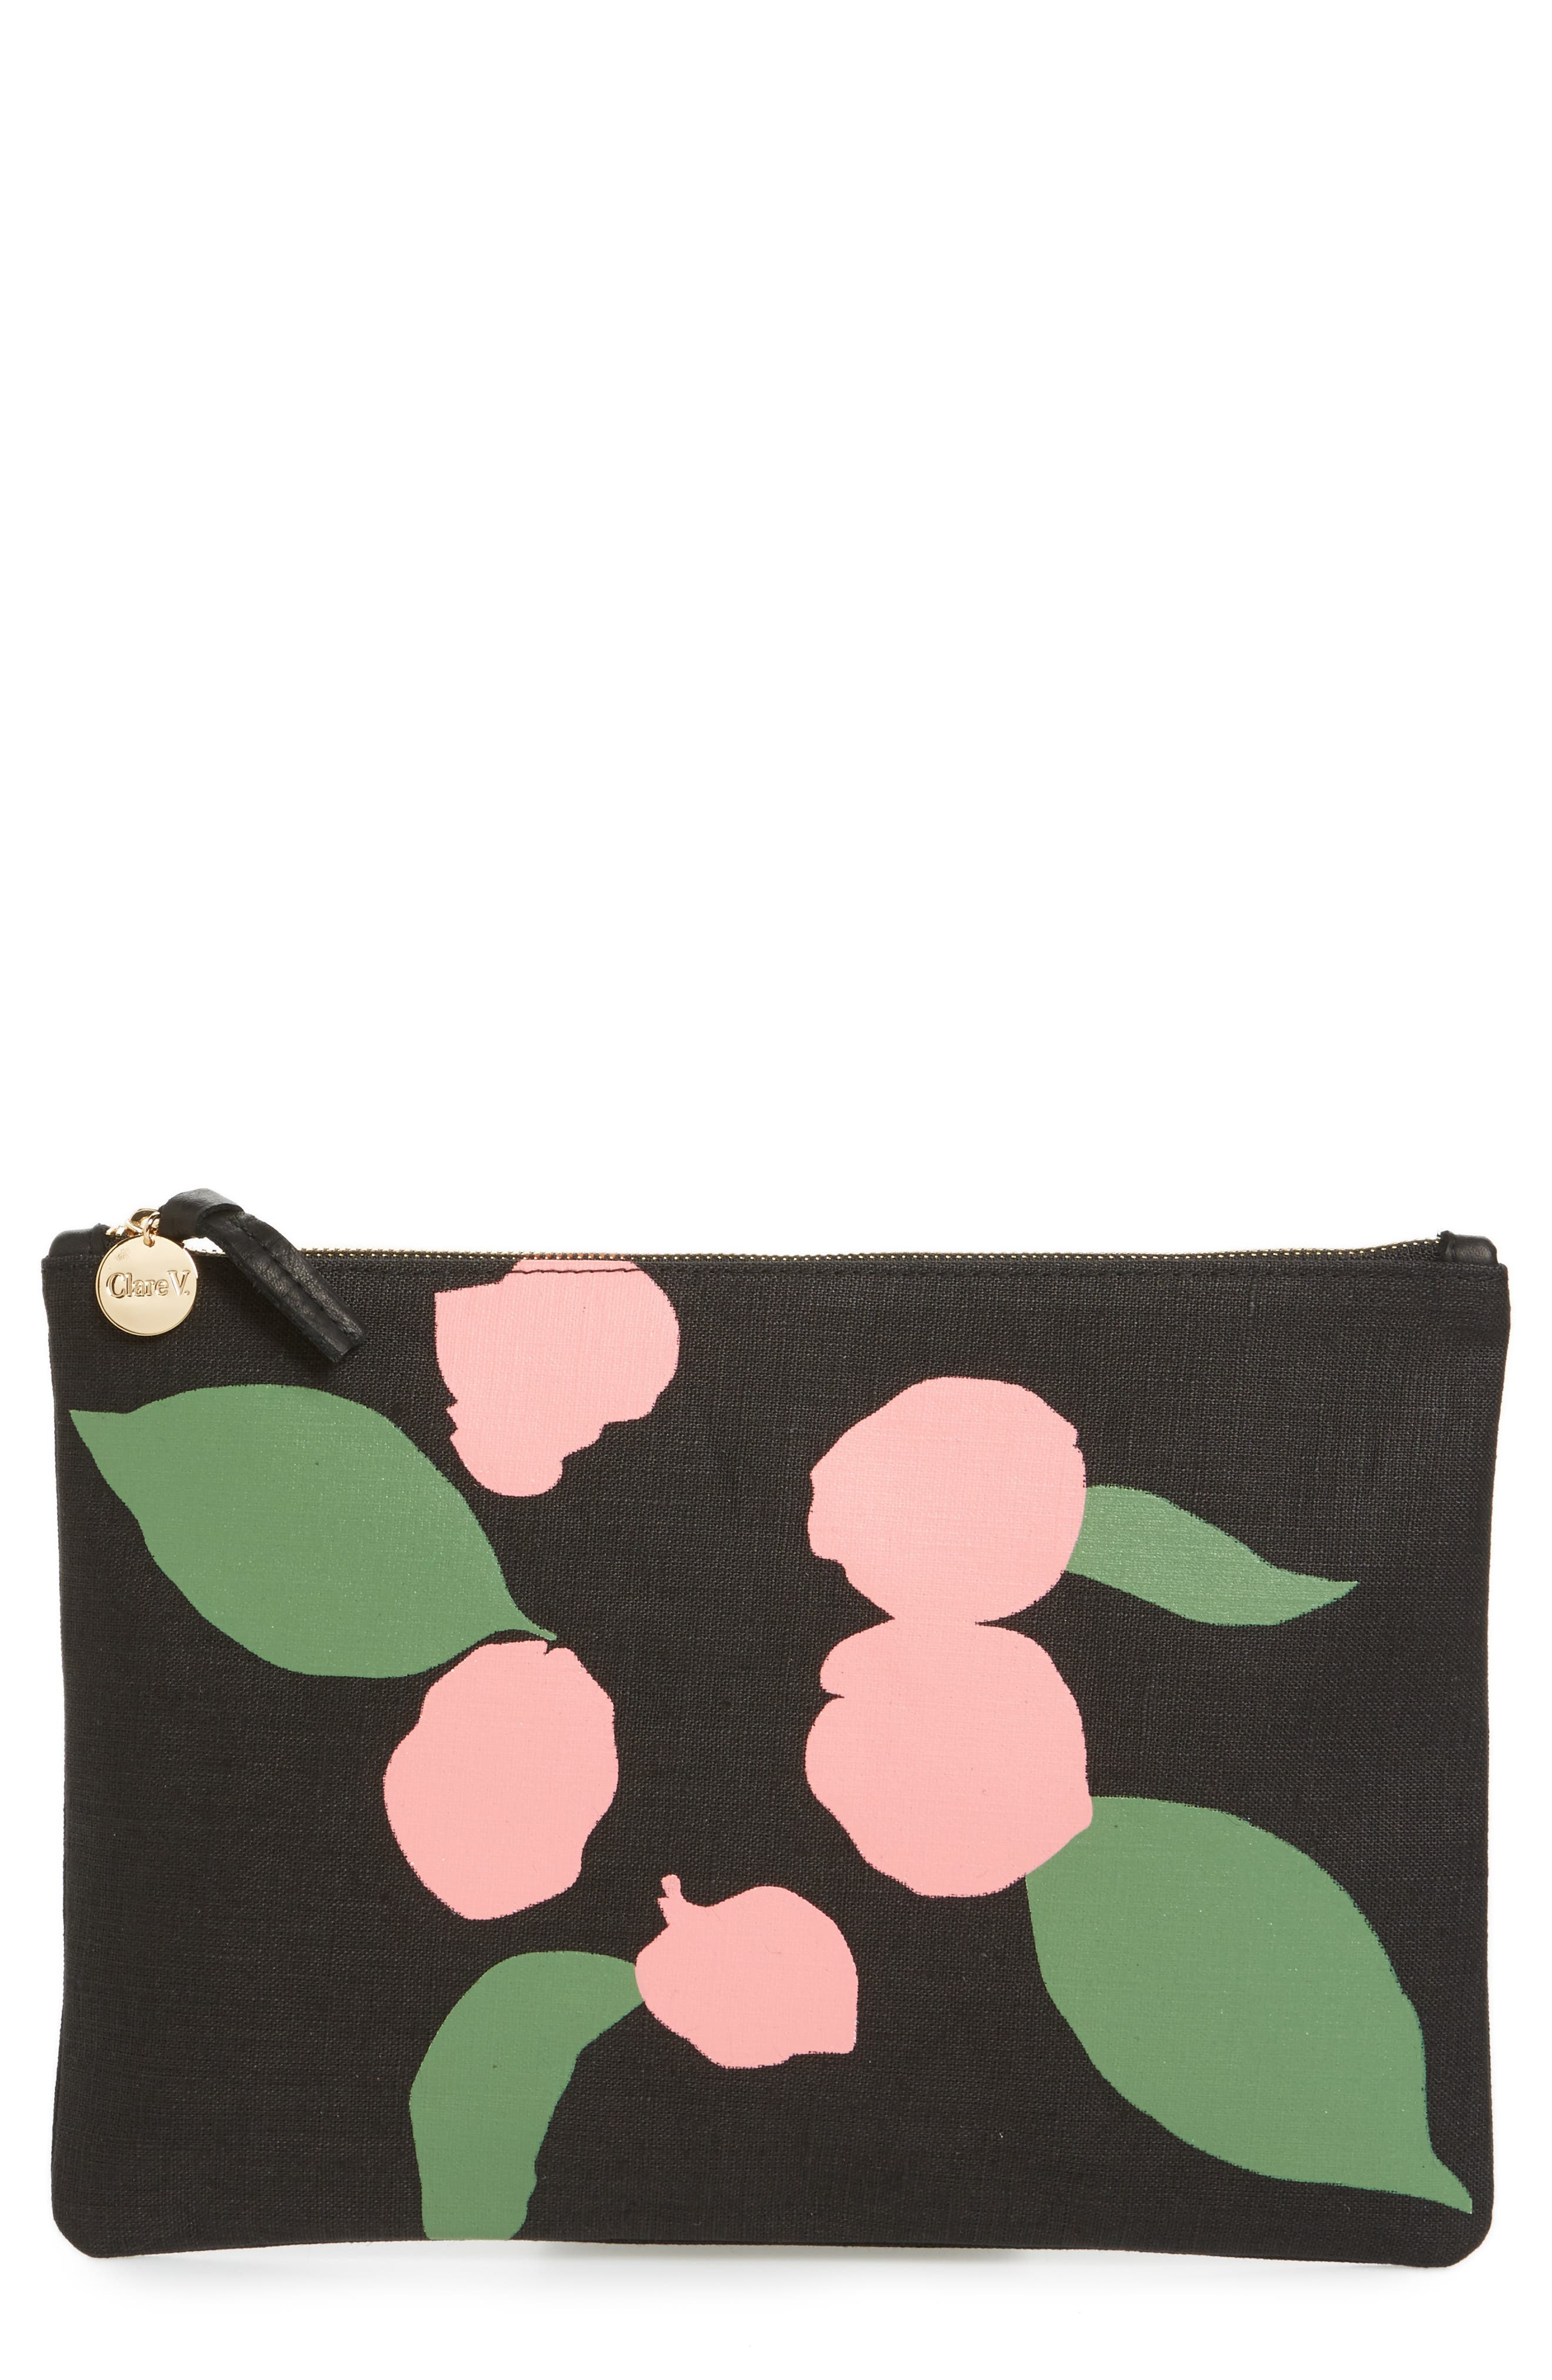 Alternate Image 1 Selected - Clare V. Bougainvillea Linen Clutch